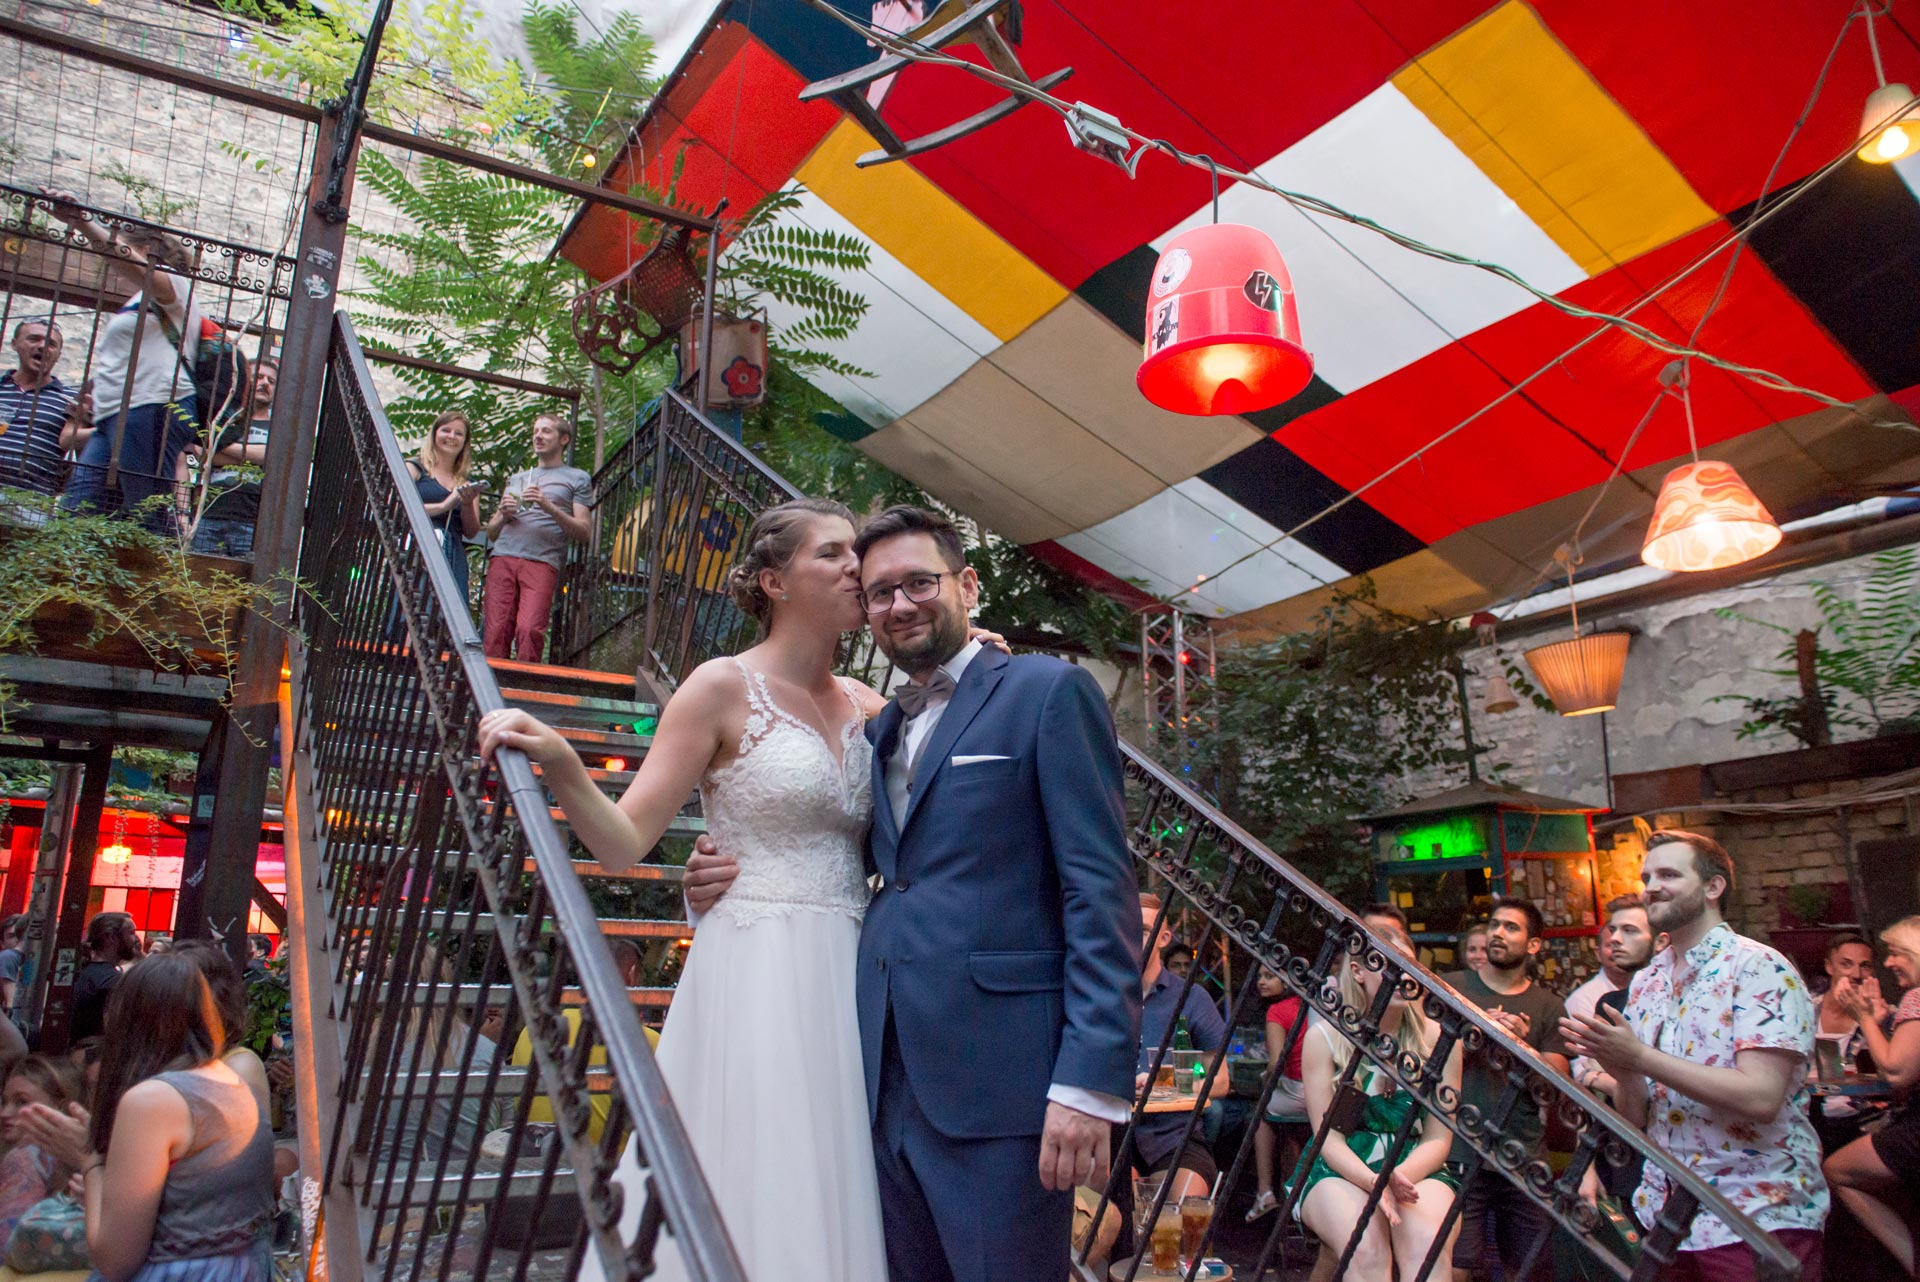 Adventure Wedding Location - Hungary, Budapest, buzzing nightlife, happy married couple inside a ruin bar